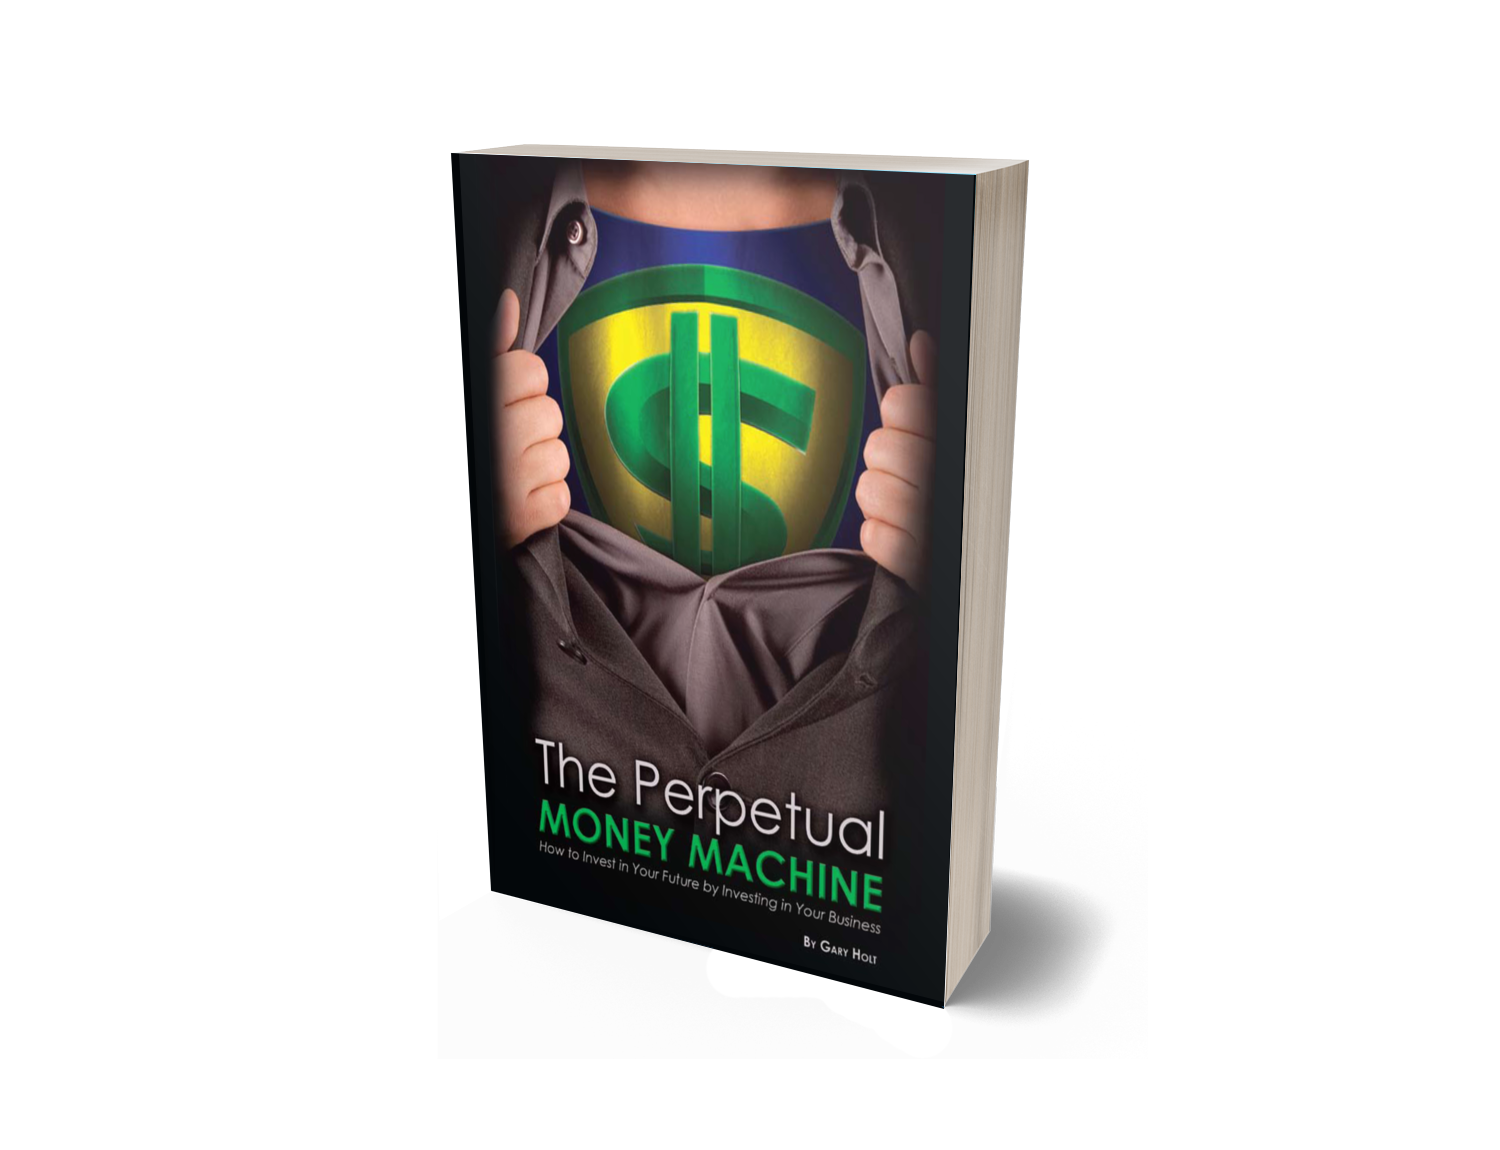 The Perpetual Money Machine How to Invest in Your Future By Investing in Your Business